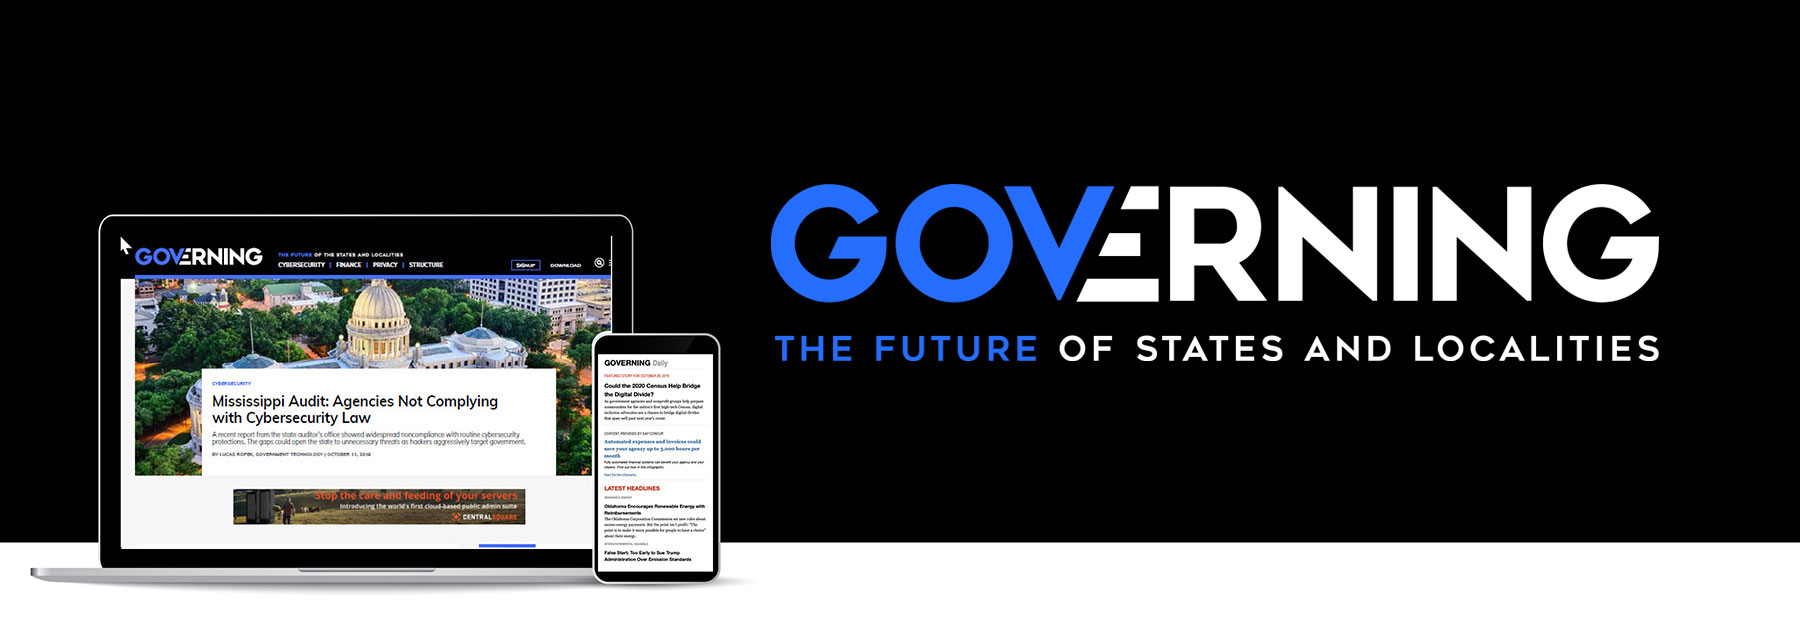 GOVERNING - Covering politics, policy and management for state and local government leaders